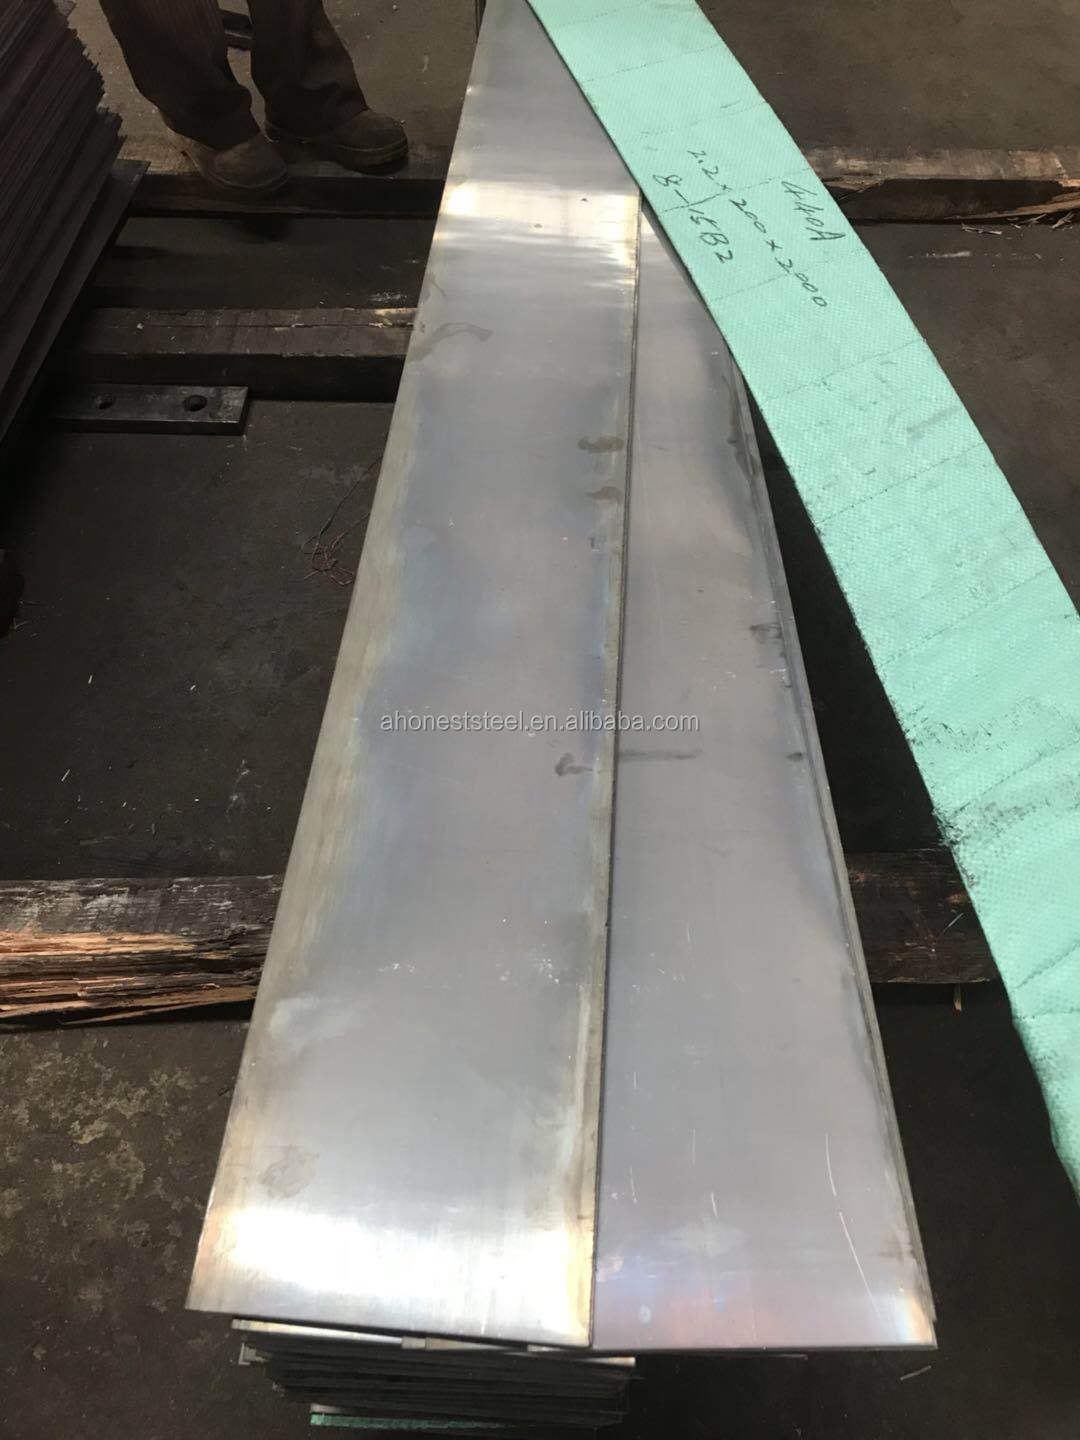 stainless steel sheets AISI 440A, UNS S44002